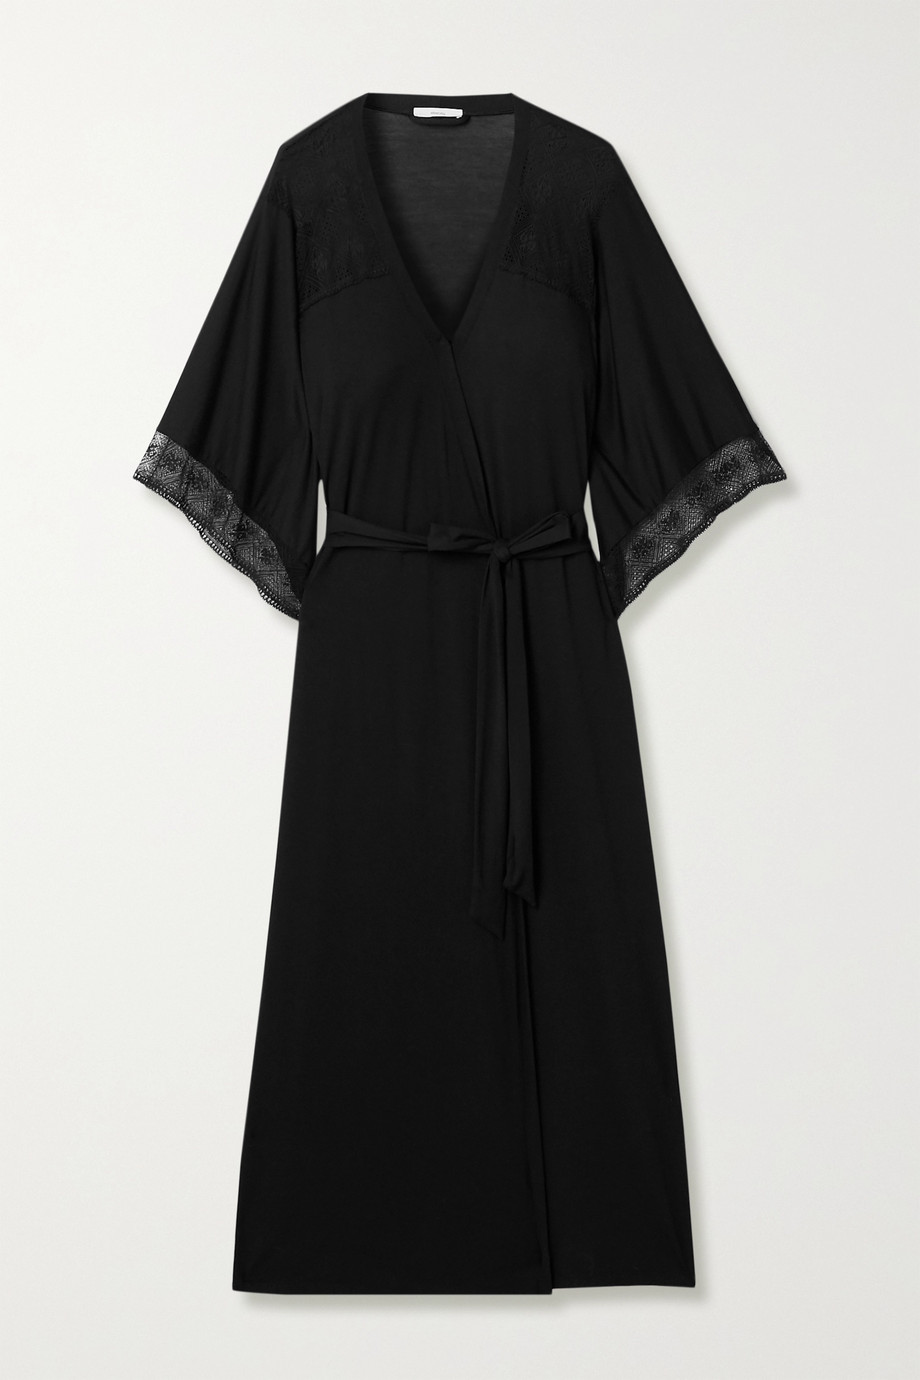 Eberjey Antoinette lace-paneled stretch-modal robe